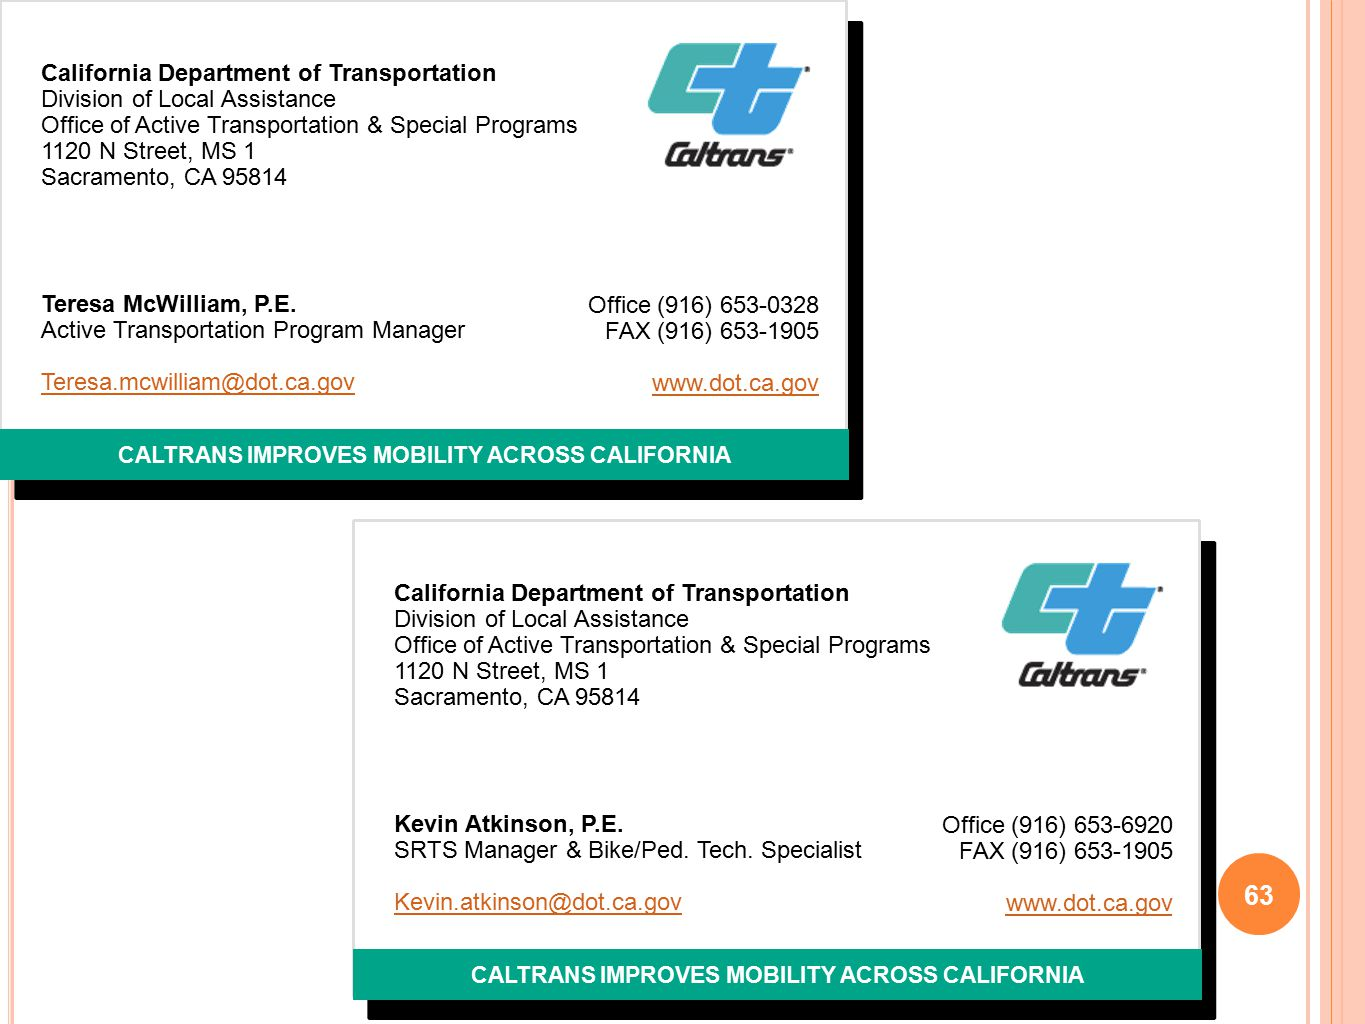 CALTRANS IMPROVES MOBILITY ACROSS CALIFORNIA California Department of Transportation Division of Local Assistance Office of Active Transportation & Special Programs 1120 N Street, MS 1 Sacramento, CA 95814 Teresa McWilliam, P.E.